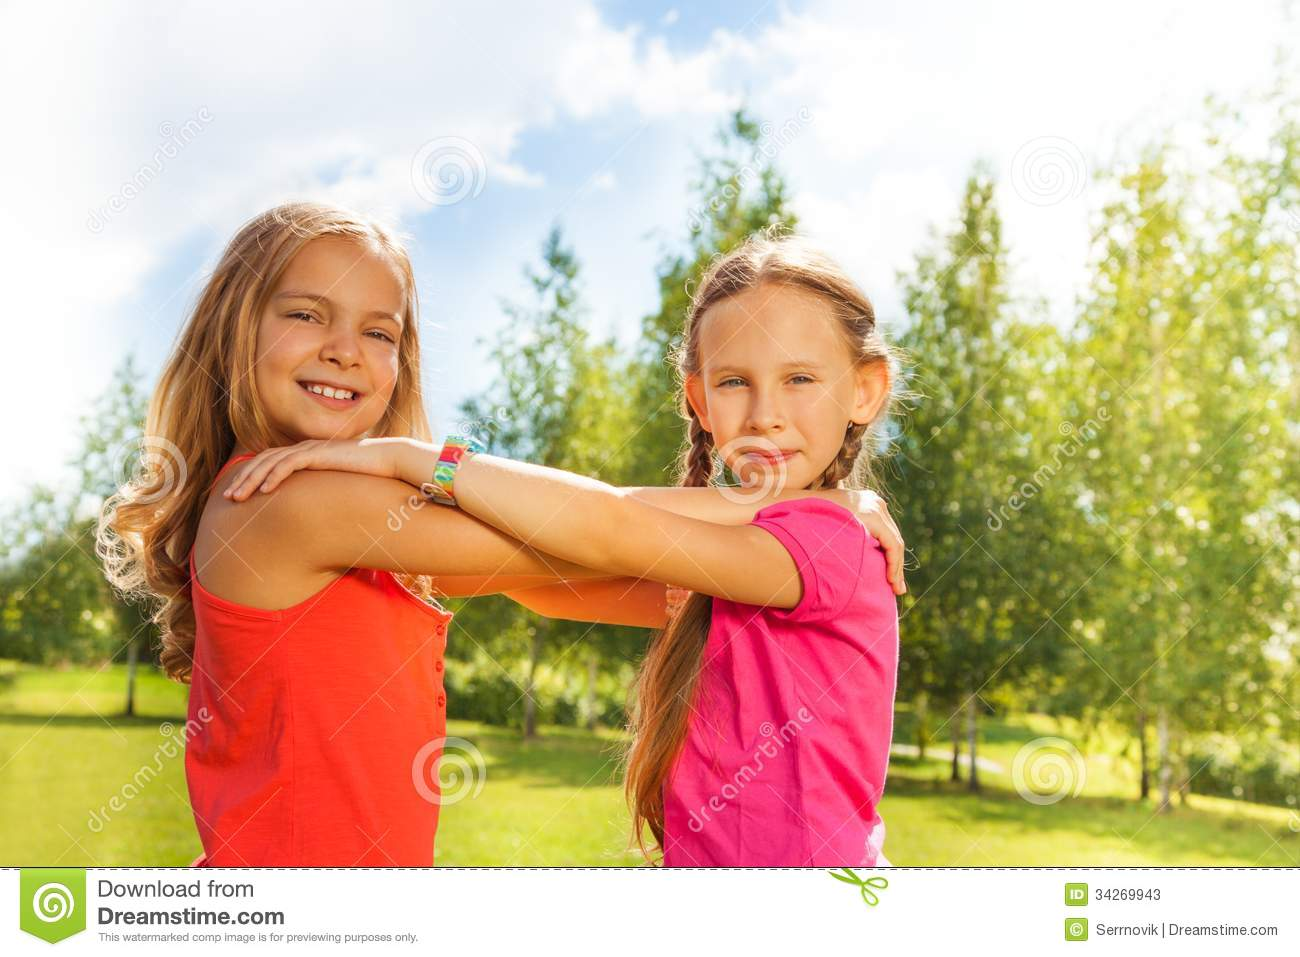 Girls Dance In The Park Stock Photos - Image: 34269943